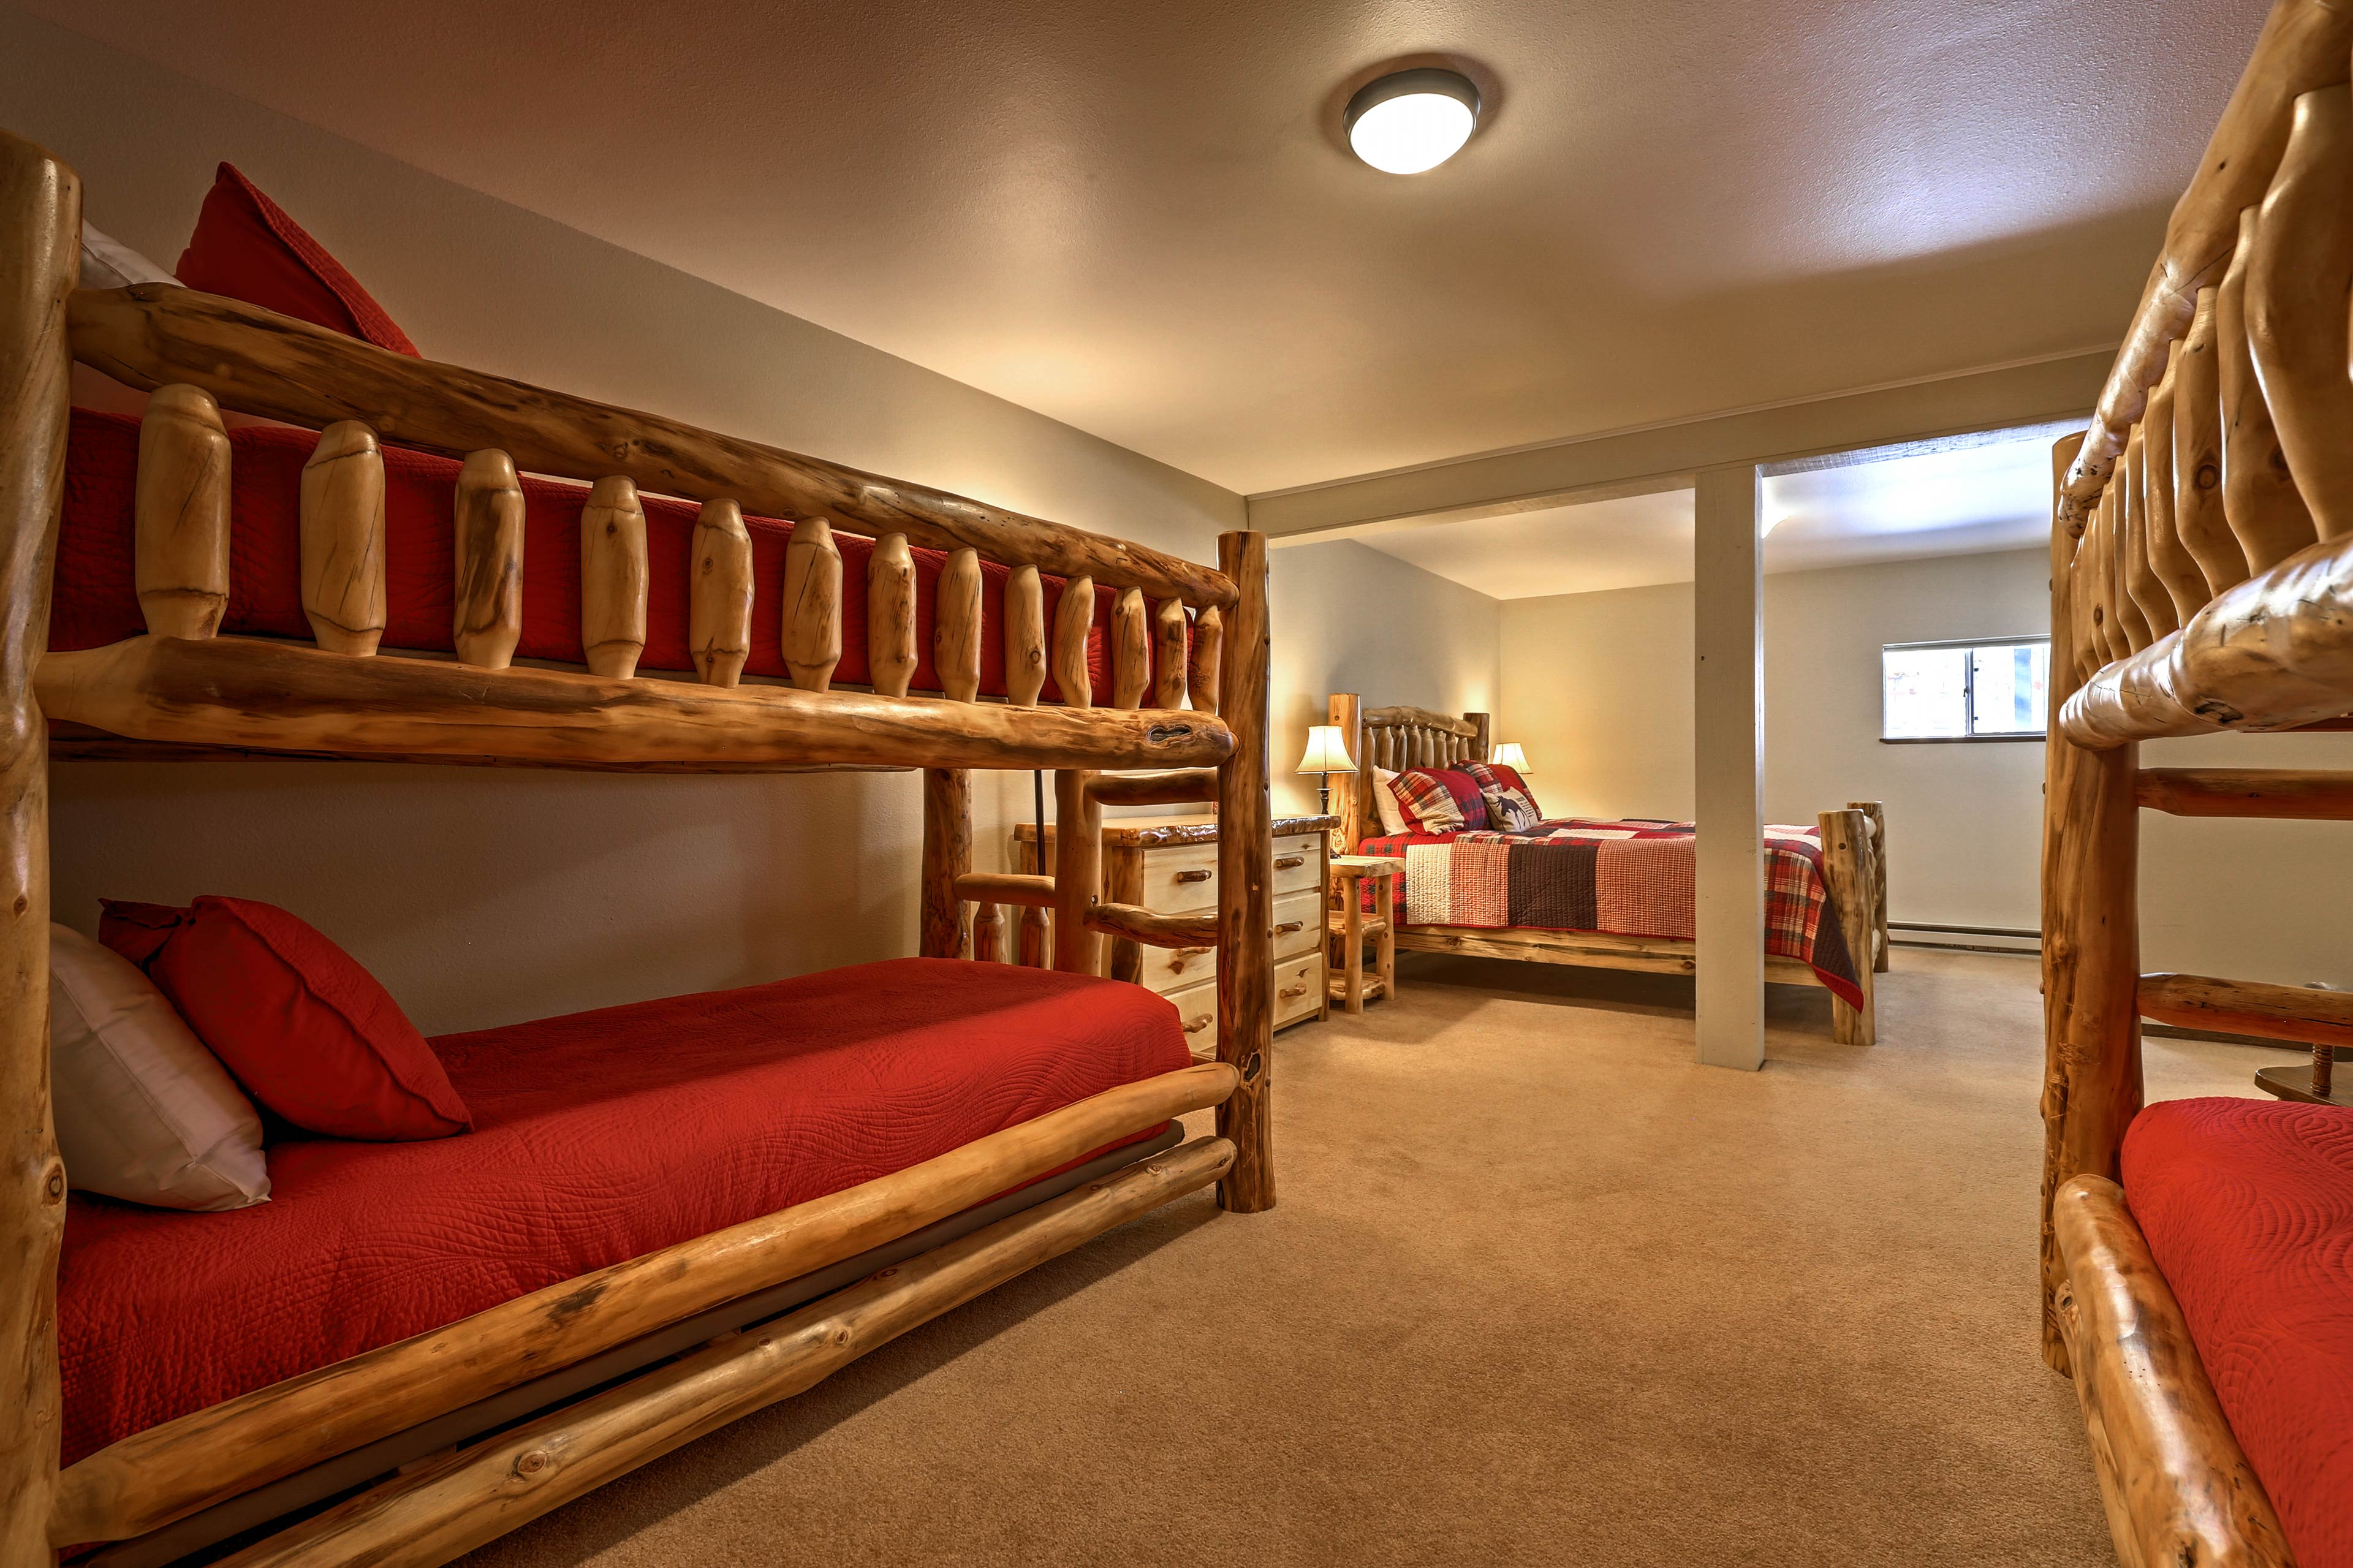 This bedroom offers space for up to 6 guests.